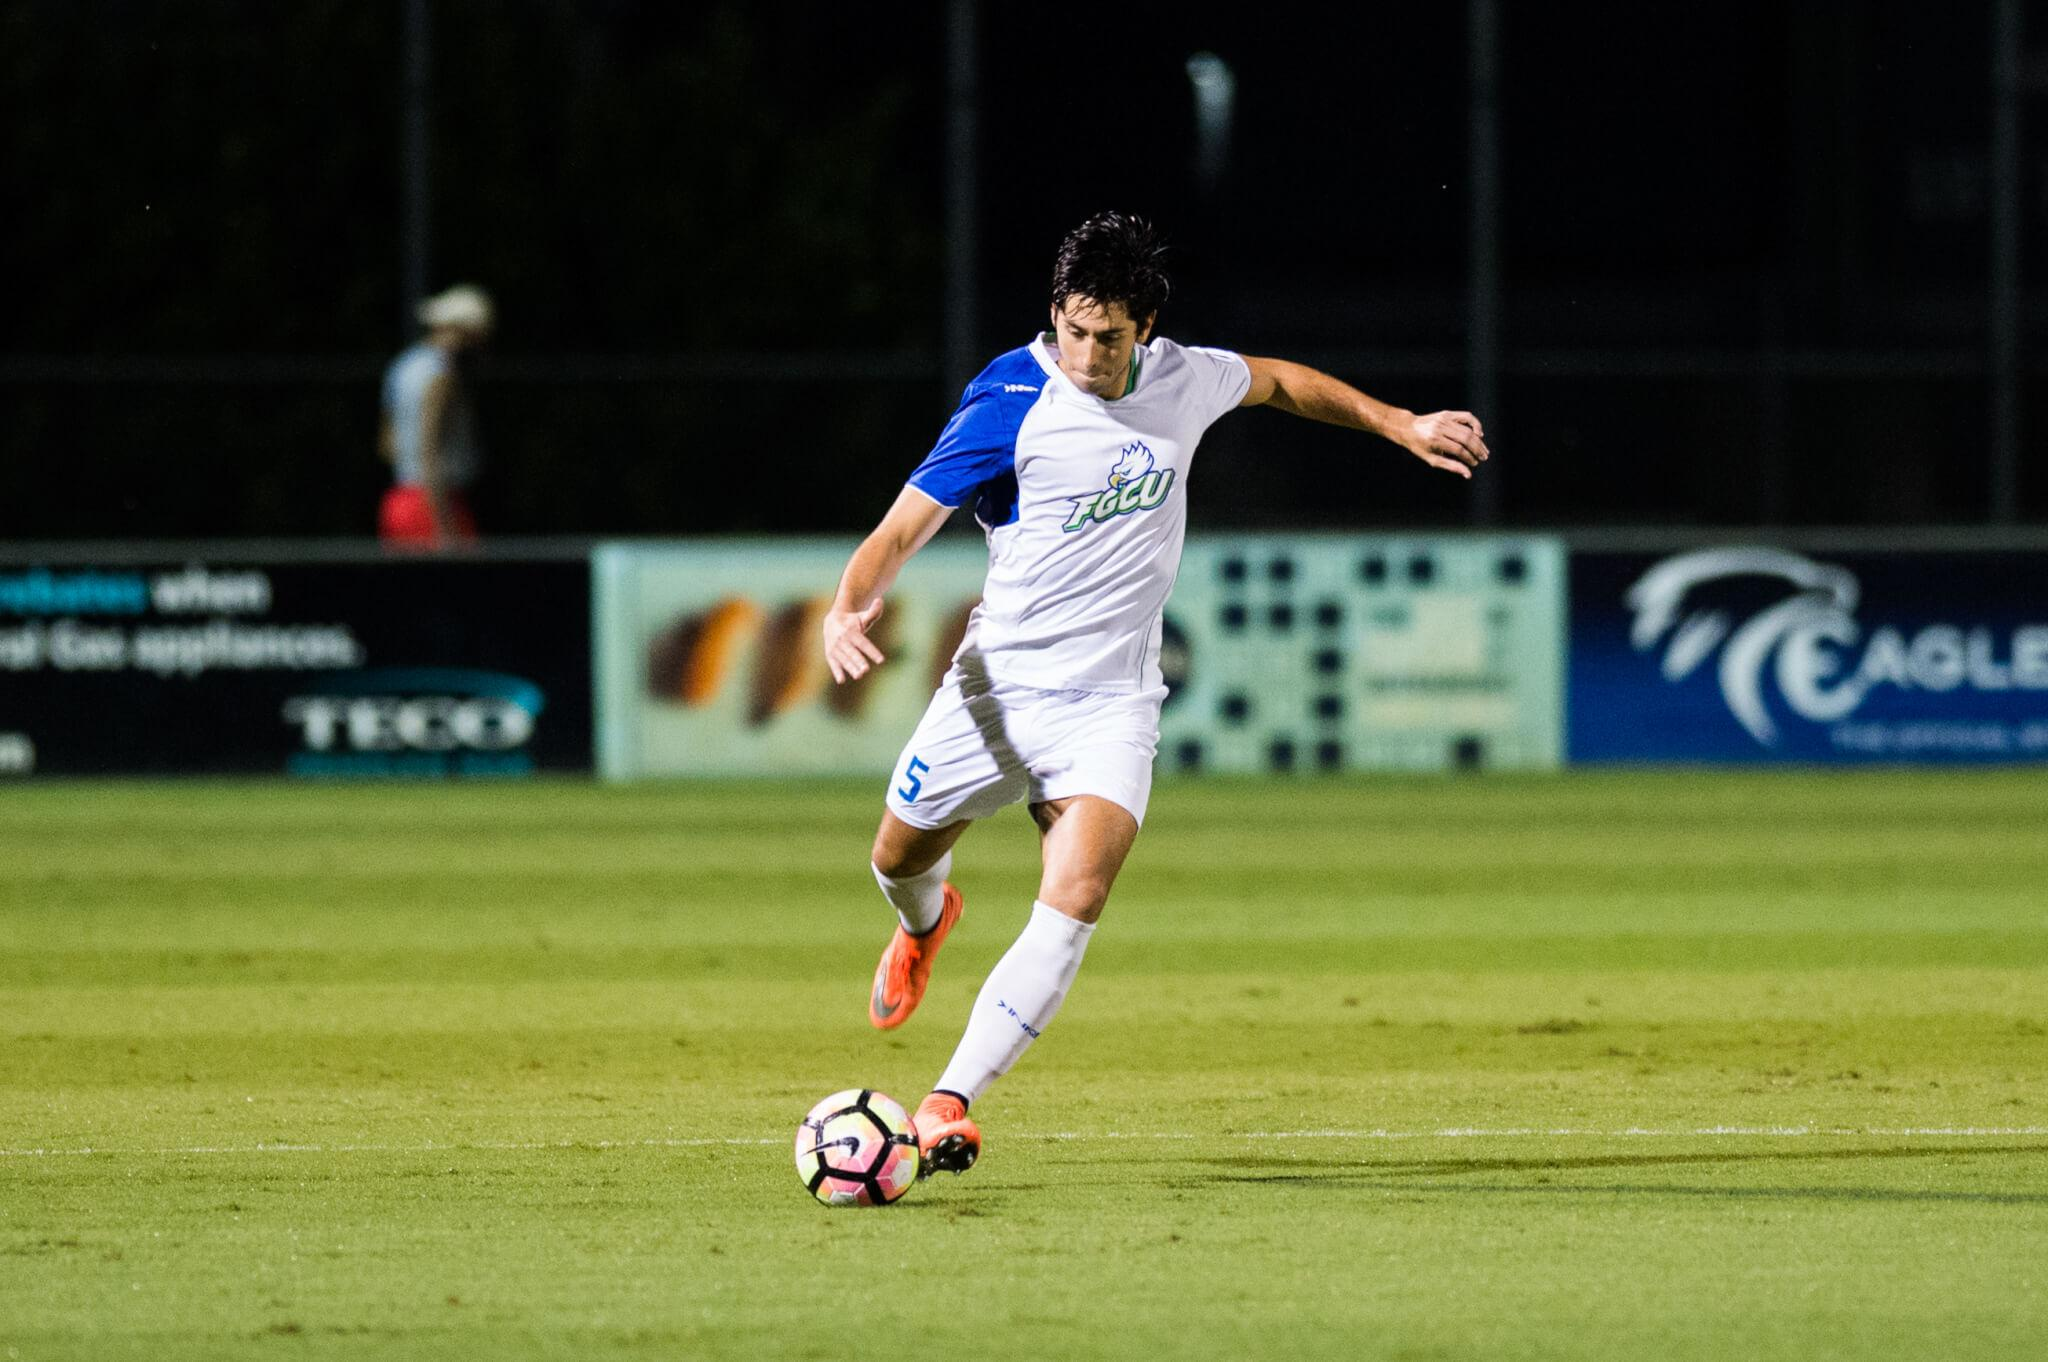 Eagles shutout FAU in final regular season match